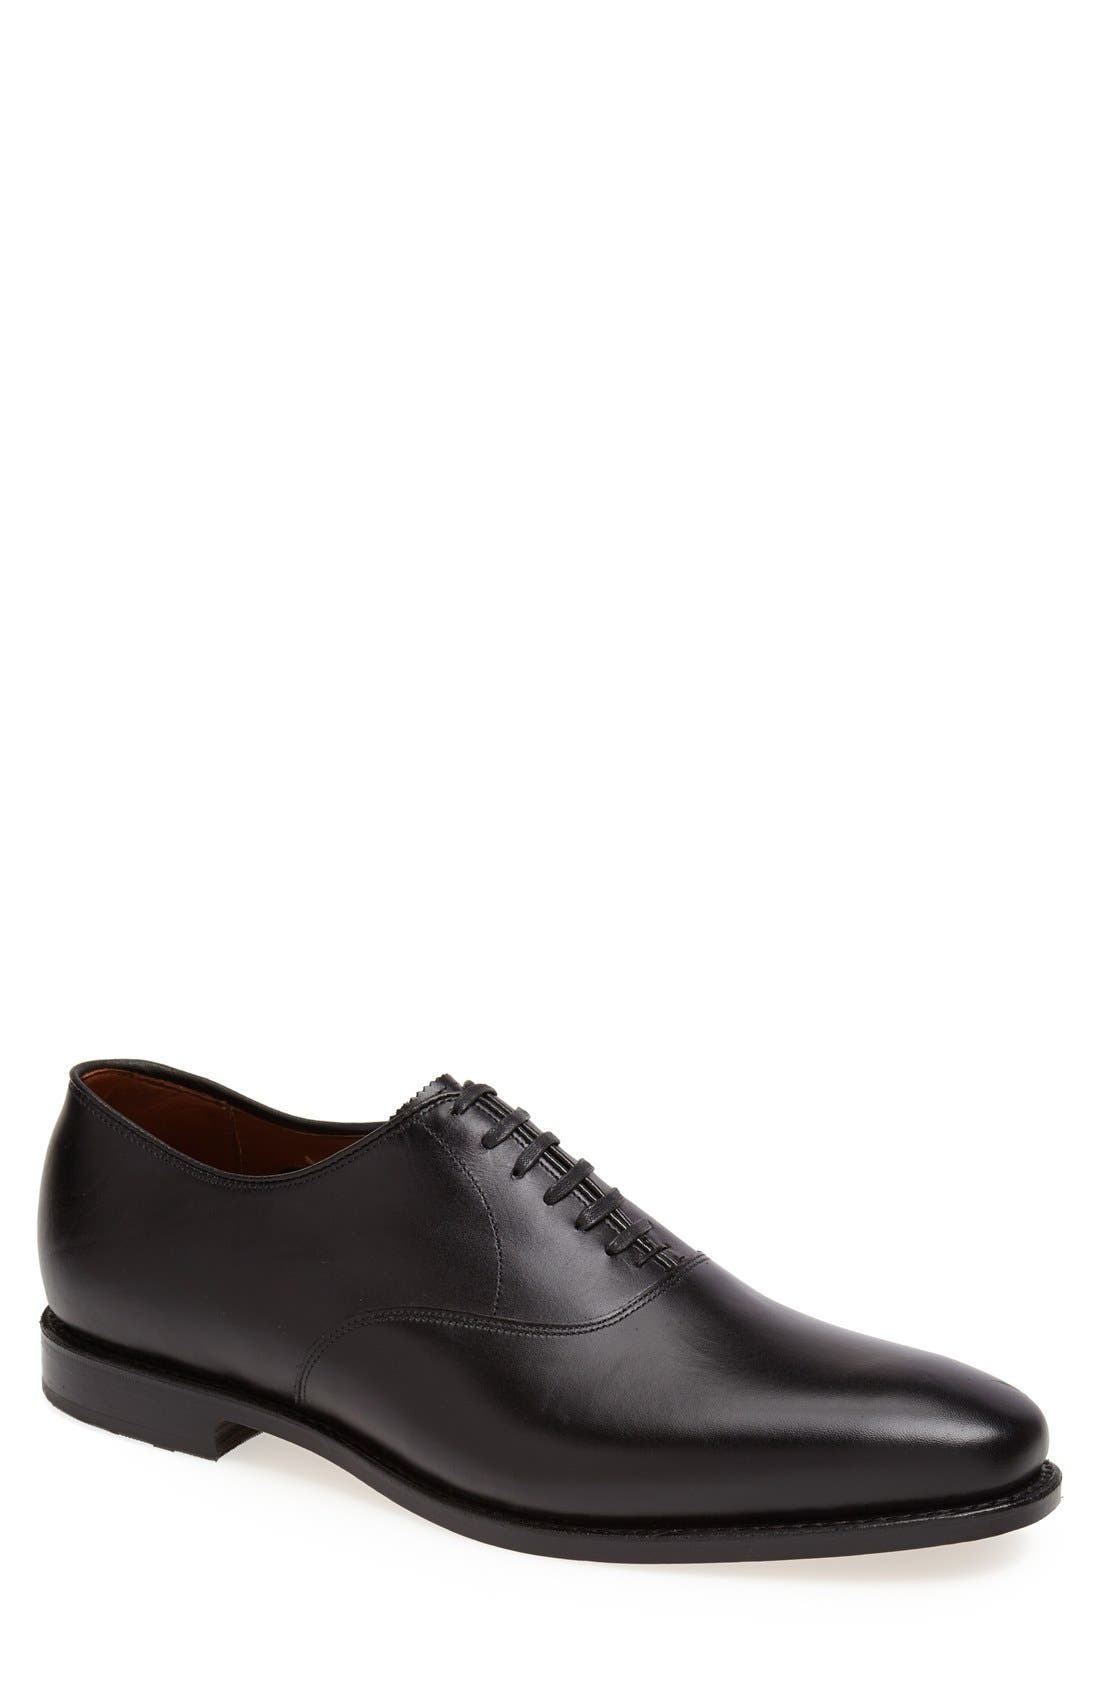 Made with Allen Edmonds\\\' signature crafting process, this richly burnished leather balmoral features an elongated front with a flatter, tapered toe for a streamlined fit. Allen Edmonds has been making shoes in America for nearly 100 years using fine leathers, a 212-stepcrafting process and 360 degree Goodyear welt construction to ensure a high-quality product, every time. Style Name: Allen Edmonds Carlyle Plain Toe Oxford (Men). Style Number: